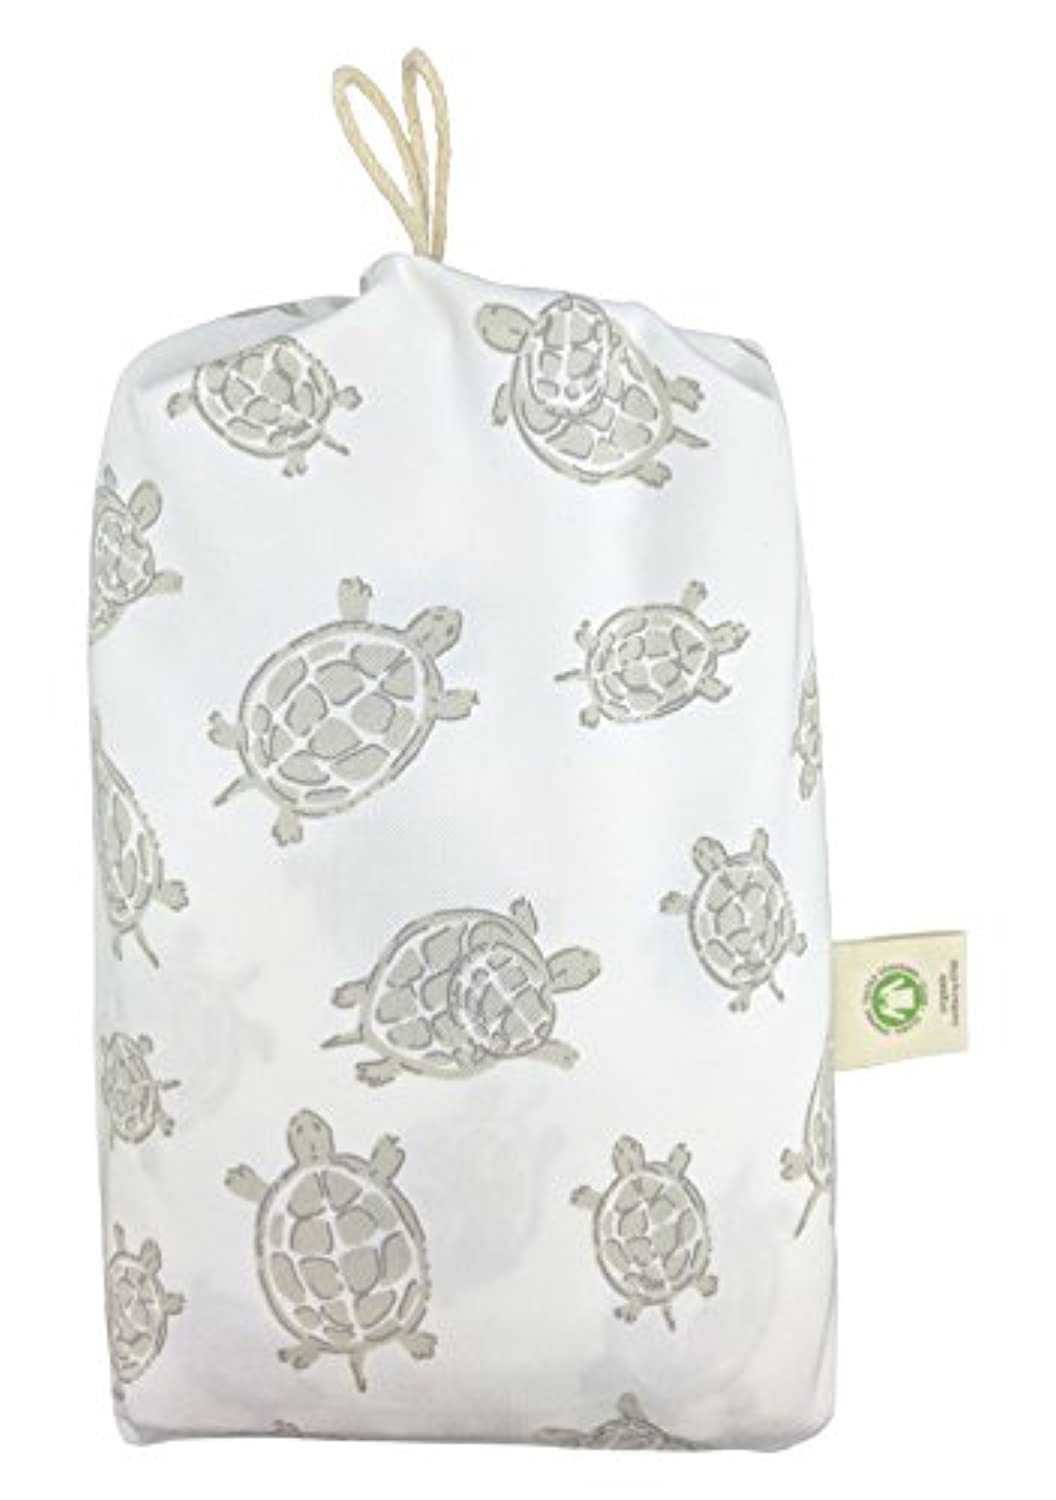 Fitted Crib Sheet in GOTS-Certified Soft Organic Cotton for Baby or Toddler, Turtle Print (Gray) by Dera Design